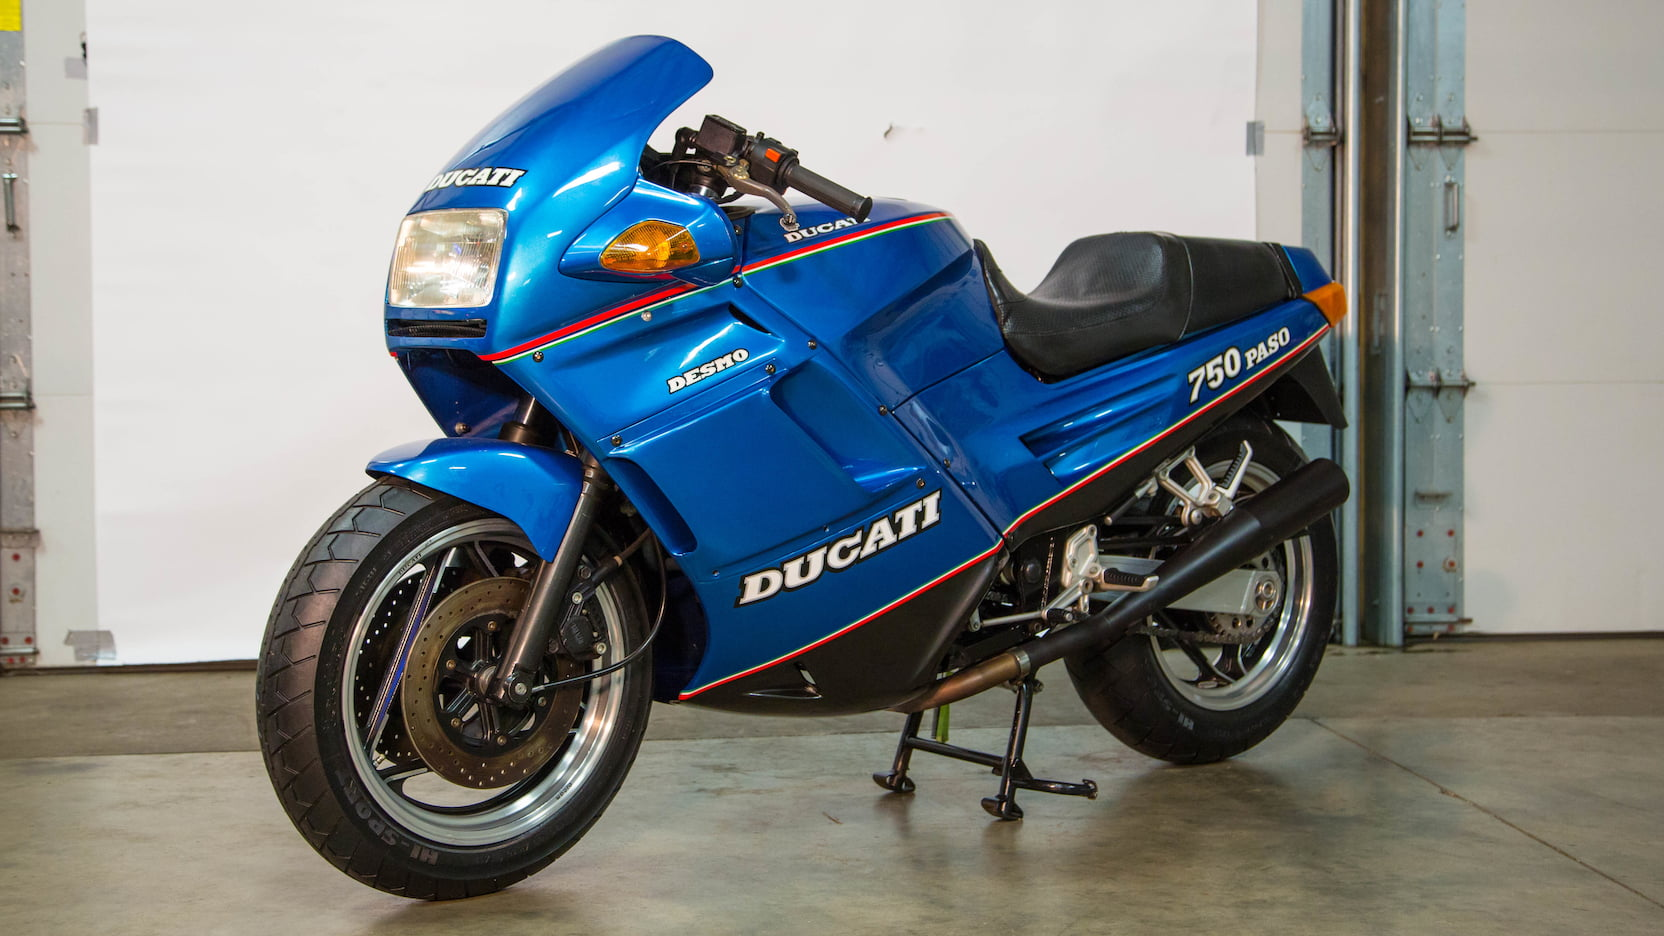 1988 Ducati Paso 750 blue 3/4 view